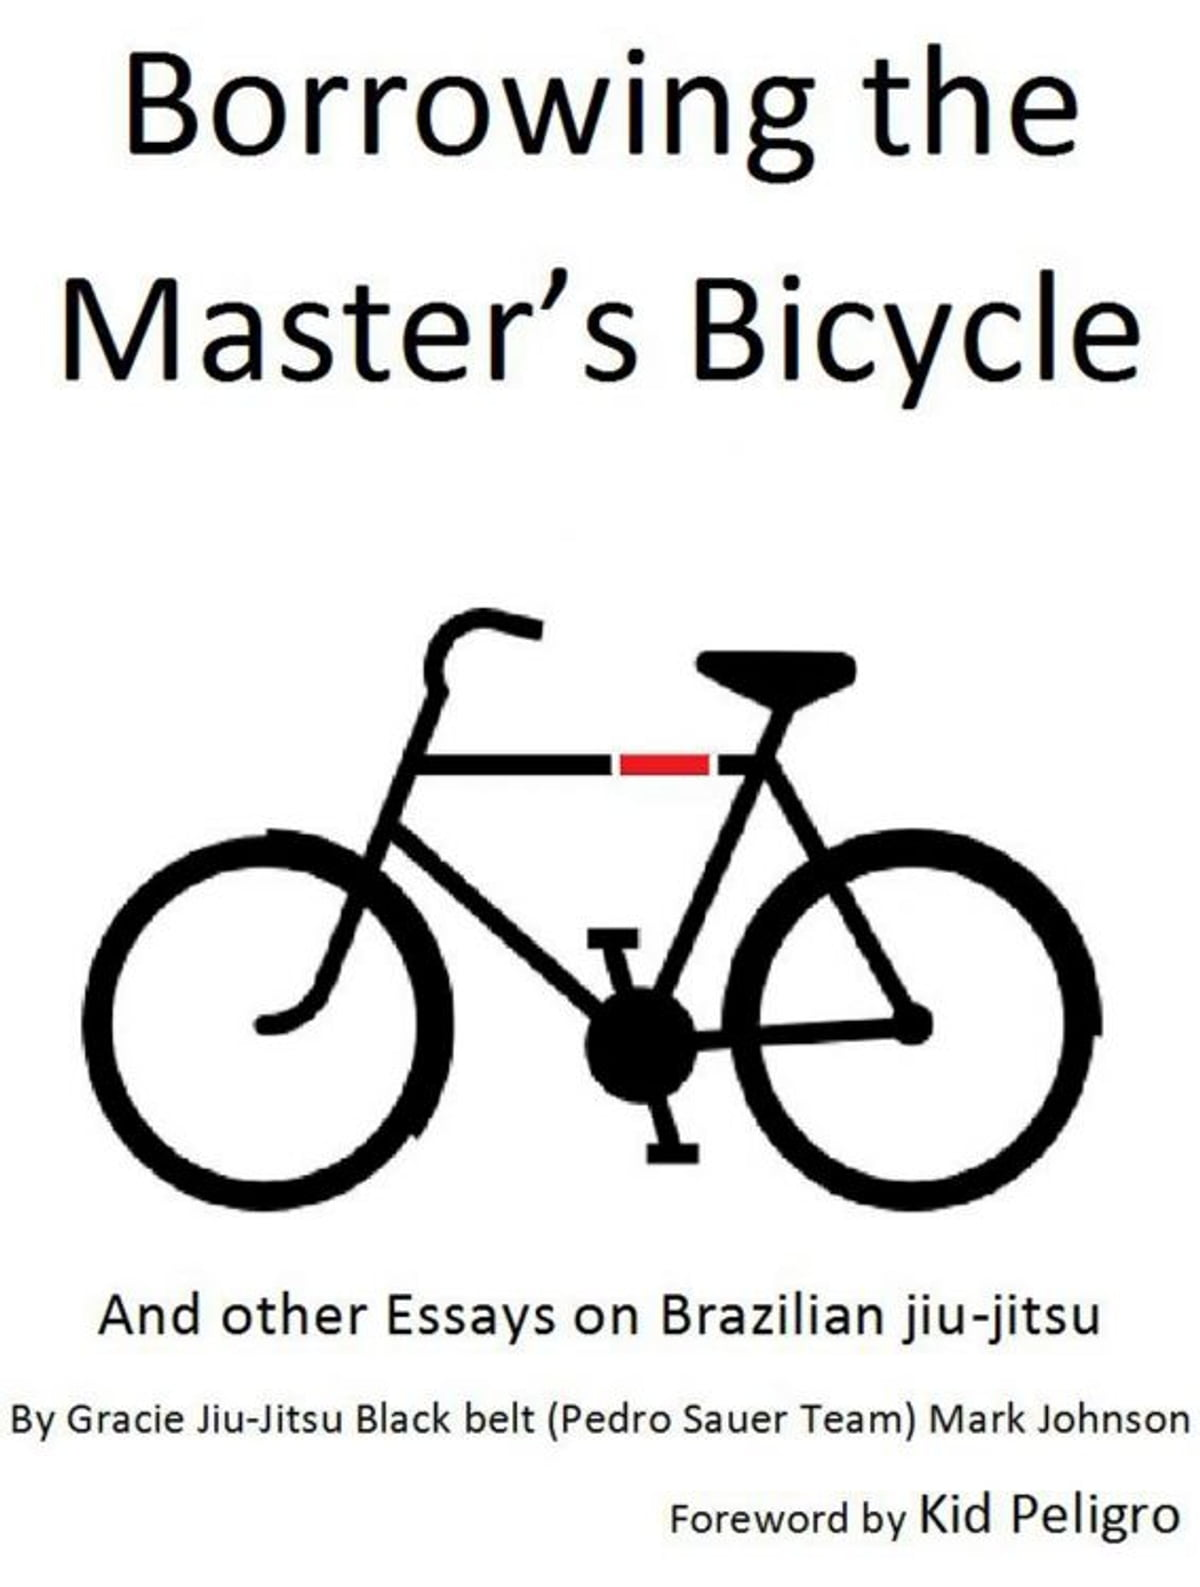 Arte Johnson On Bike Borrowing The Master S Bicycle And Other Essays On Brazilian Jiu Jitsu Ebook By Mark Johnson Rakuten Kobo